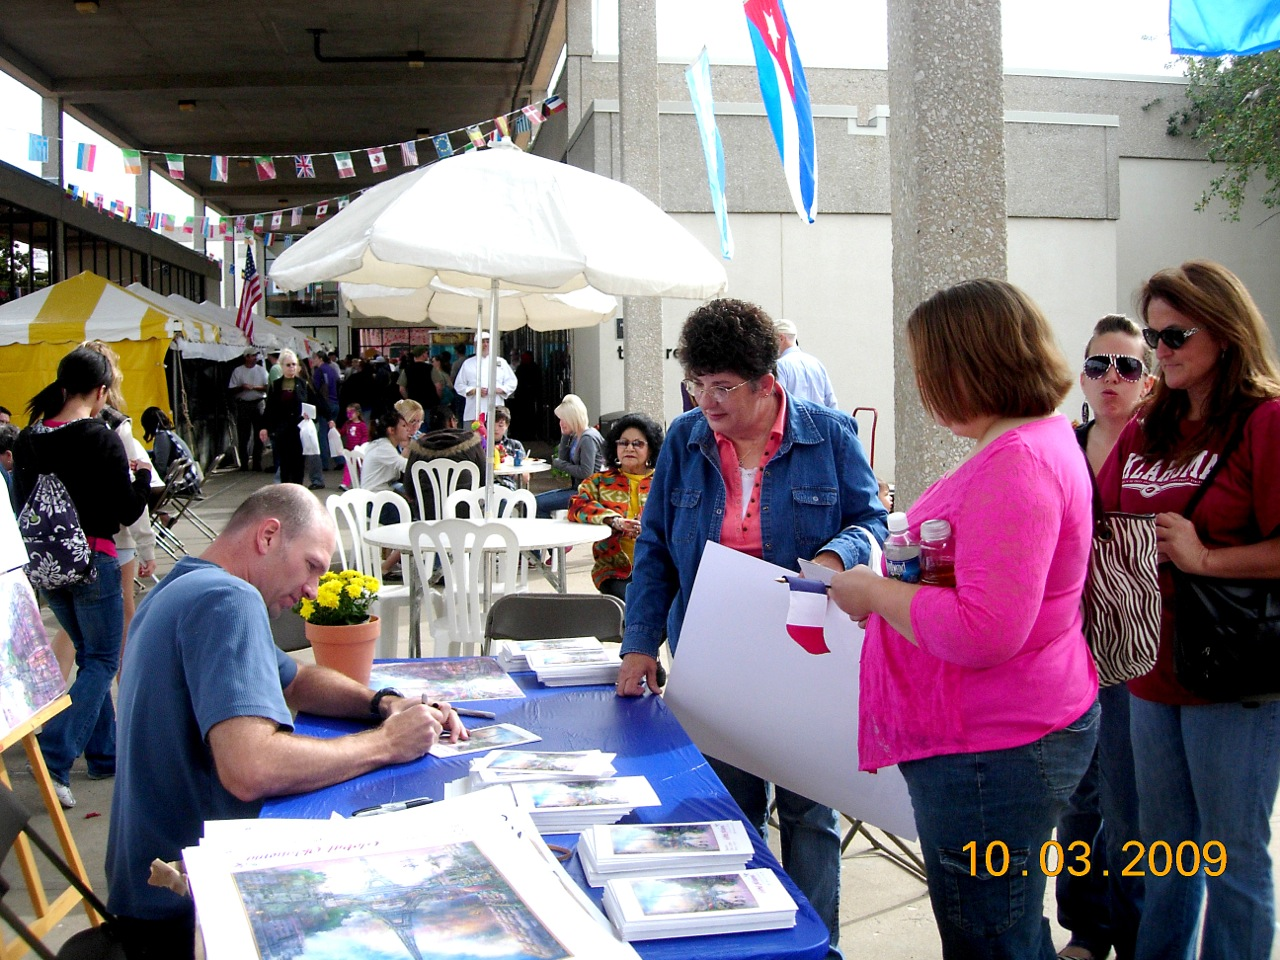 Jonathan signing posters at 2009 Global Oklahoma. Food Court in background.